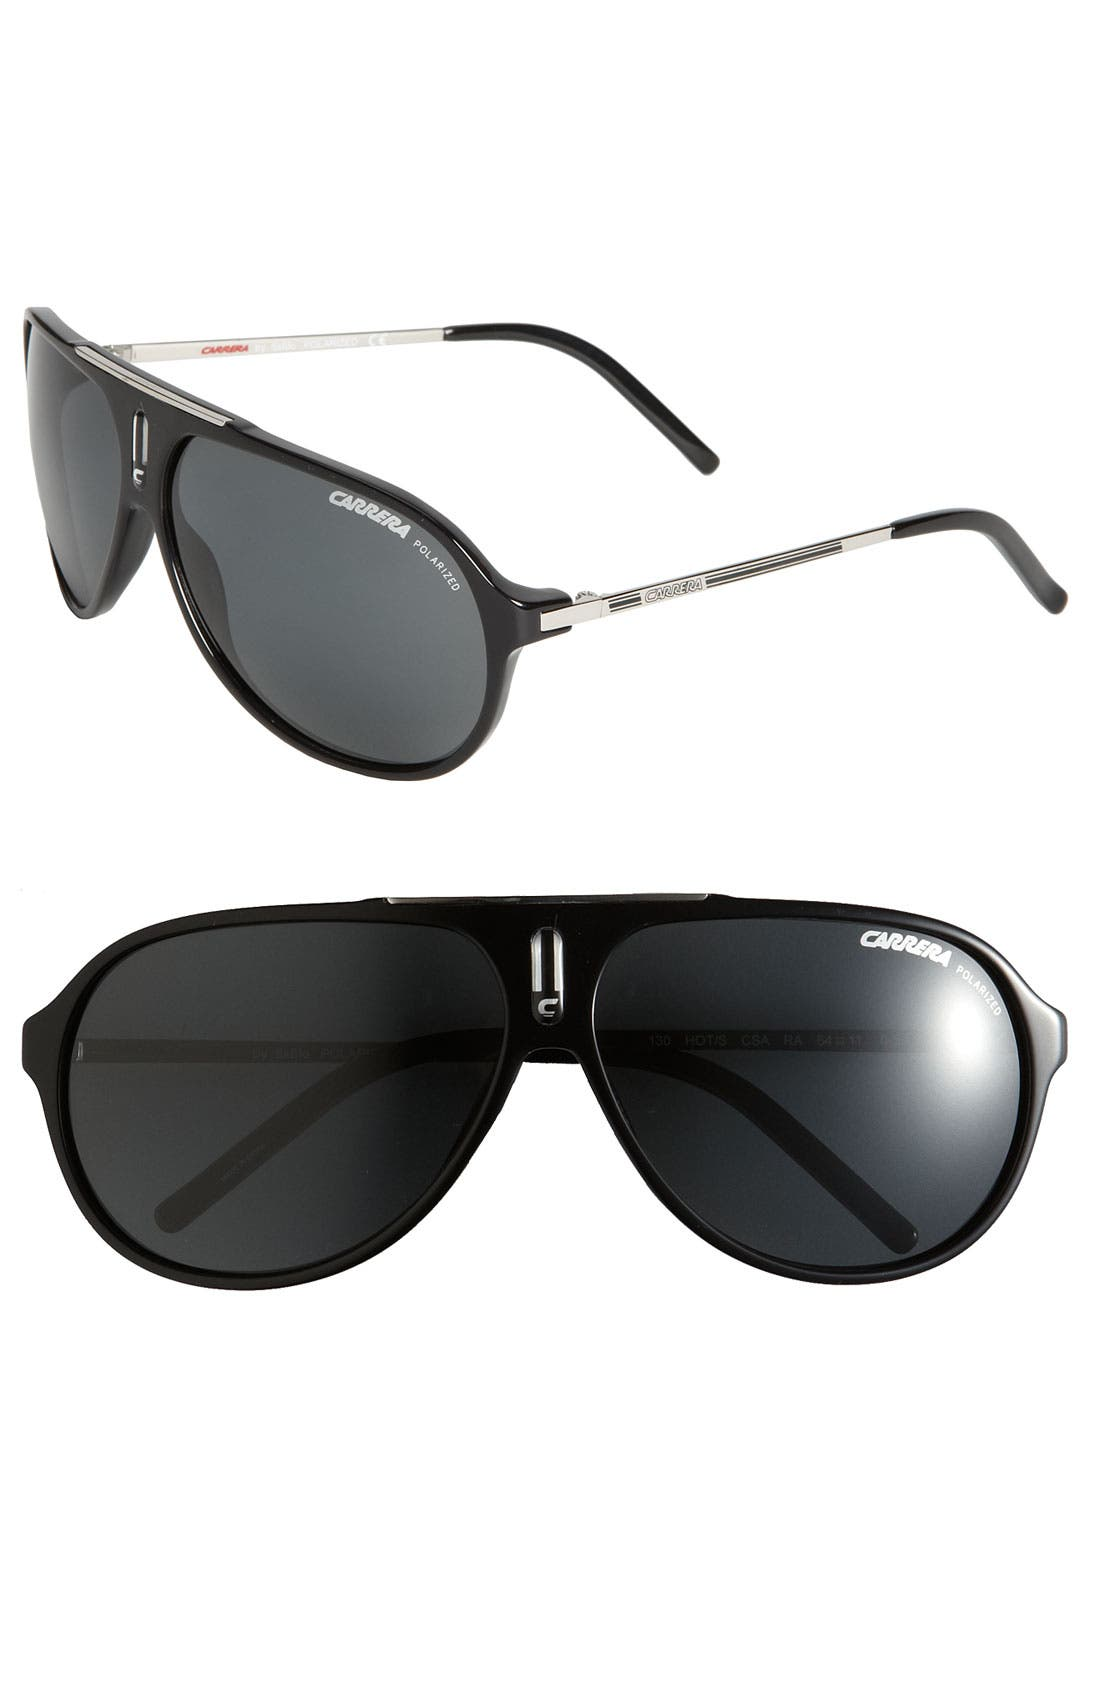 Alternate Image 1 Selected - Carrera Eyewear 'Hots' 64mm Aviator Sunglasses